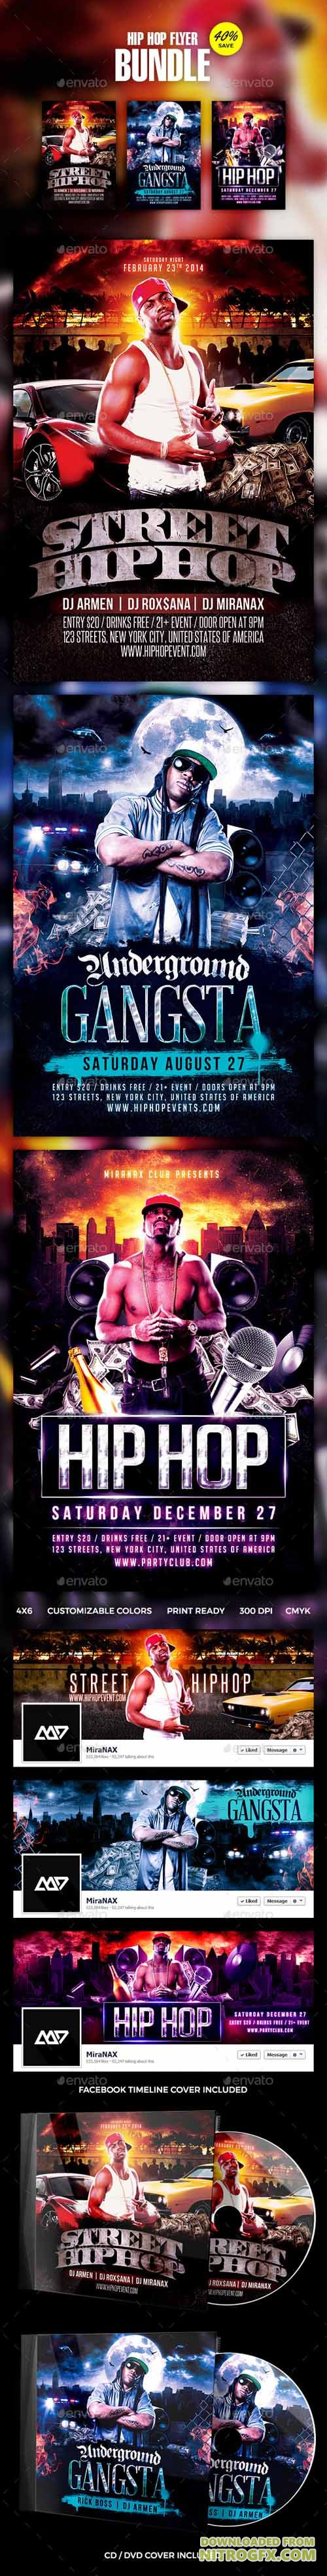 Hip Hop - Rap Flyer Template PSD Bundle 11643524